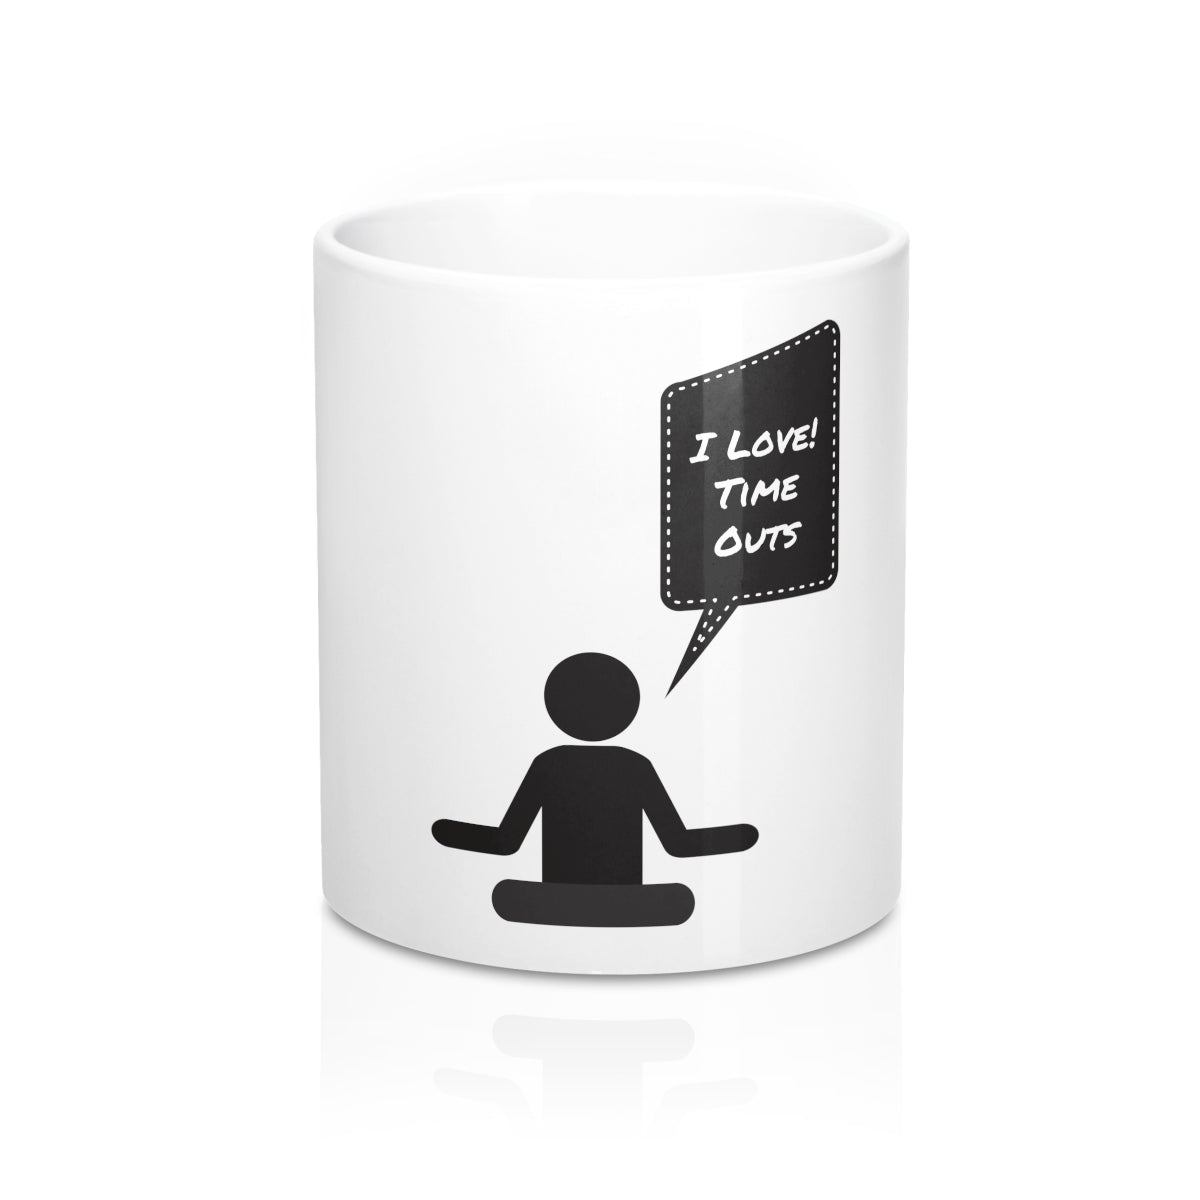 I Love Time Outs Meditation Mug